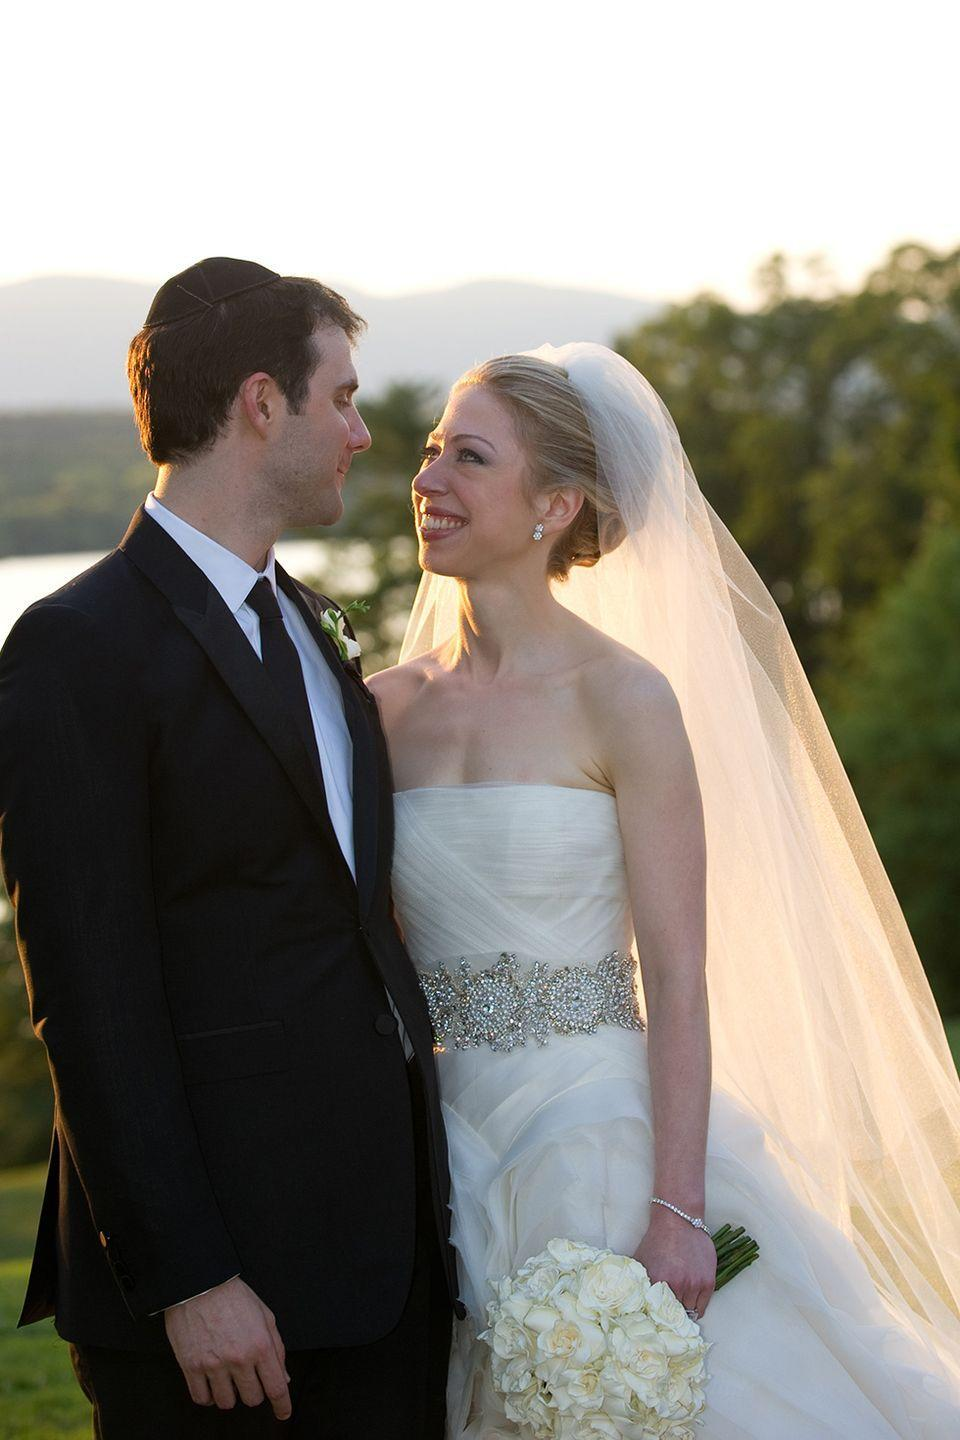 <p>Chelsea Clinton tied the knot with Marc Mezvinsky in a strapless Vera Wang gown fit for an American princess. The silver hand-embroidered crystal sash complimented the generous layers of ruffled silk organza. She wore a head-turning cathedral-length veil to walk down the aisle.</p>